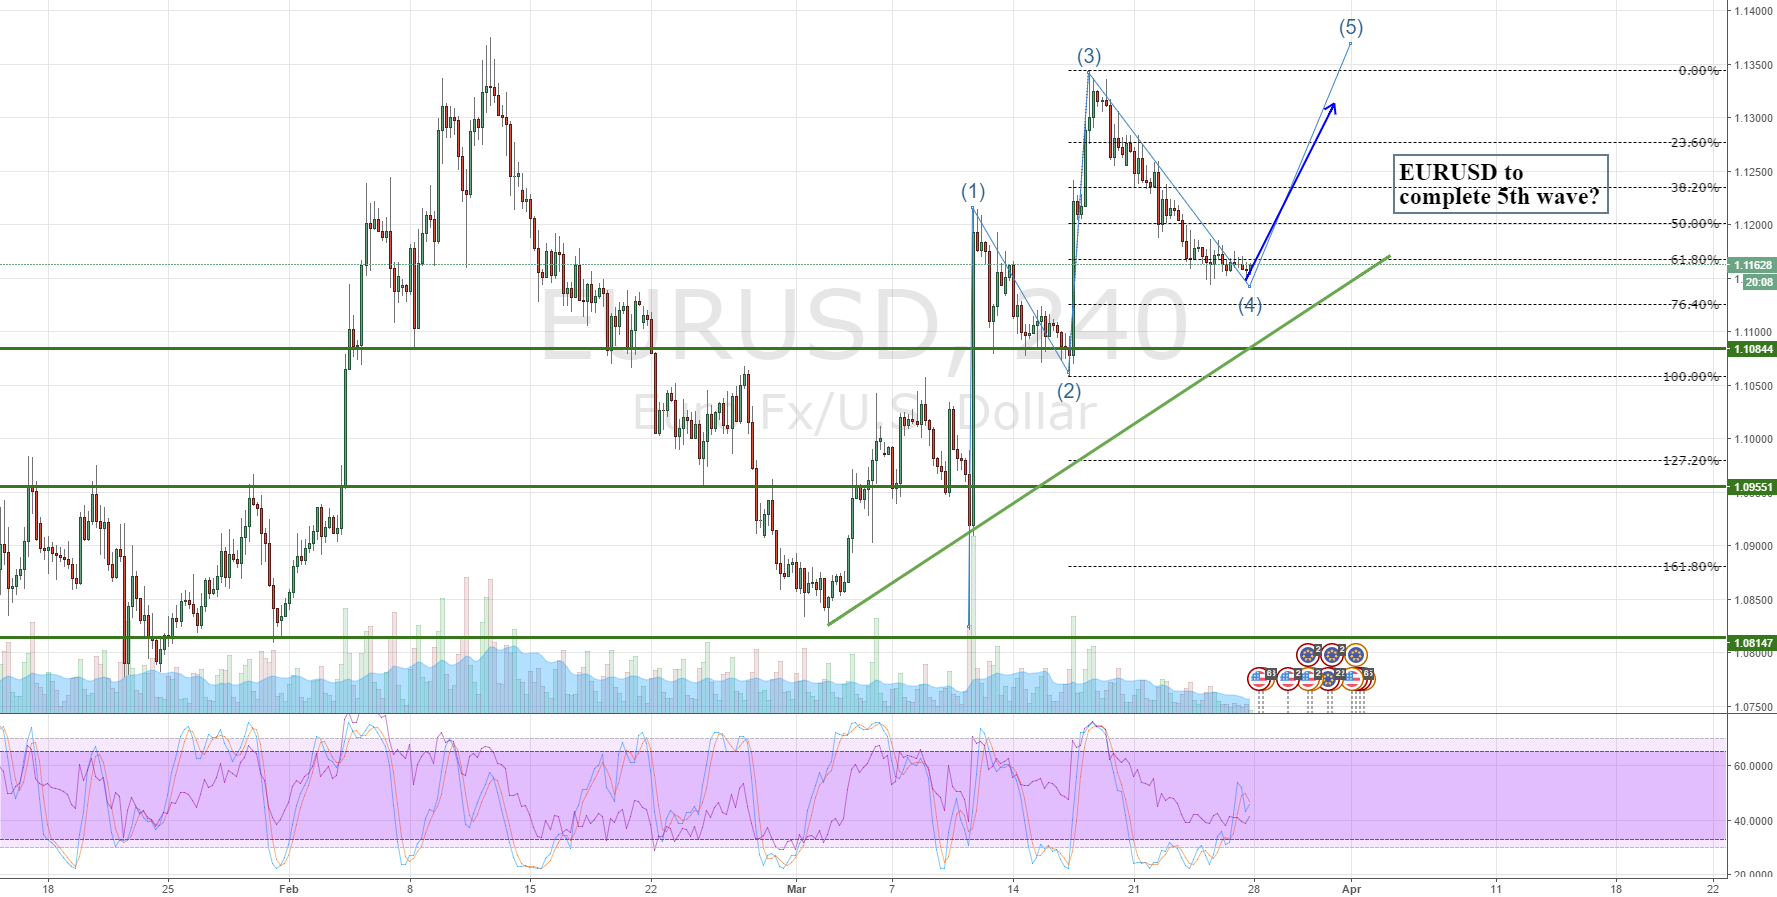 EURUSD to complete 5th wave?